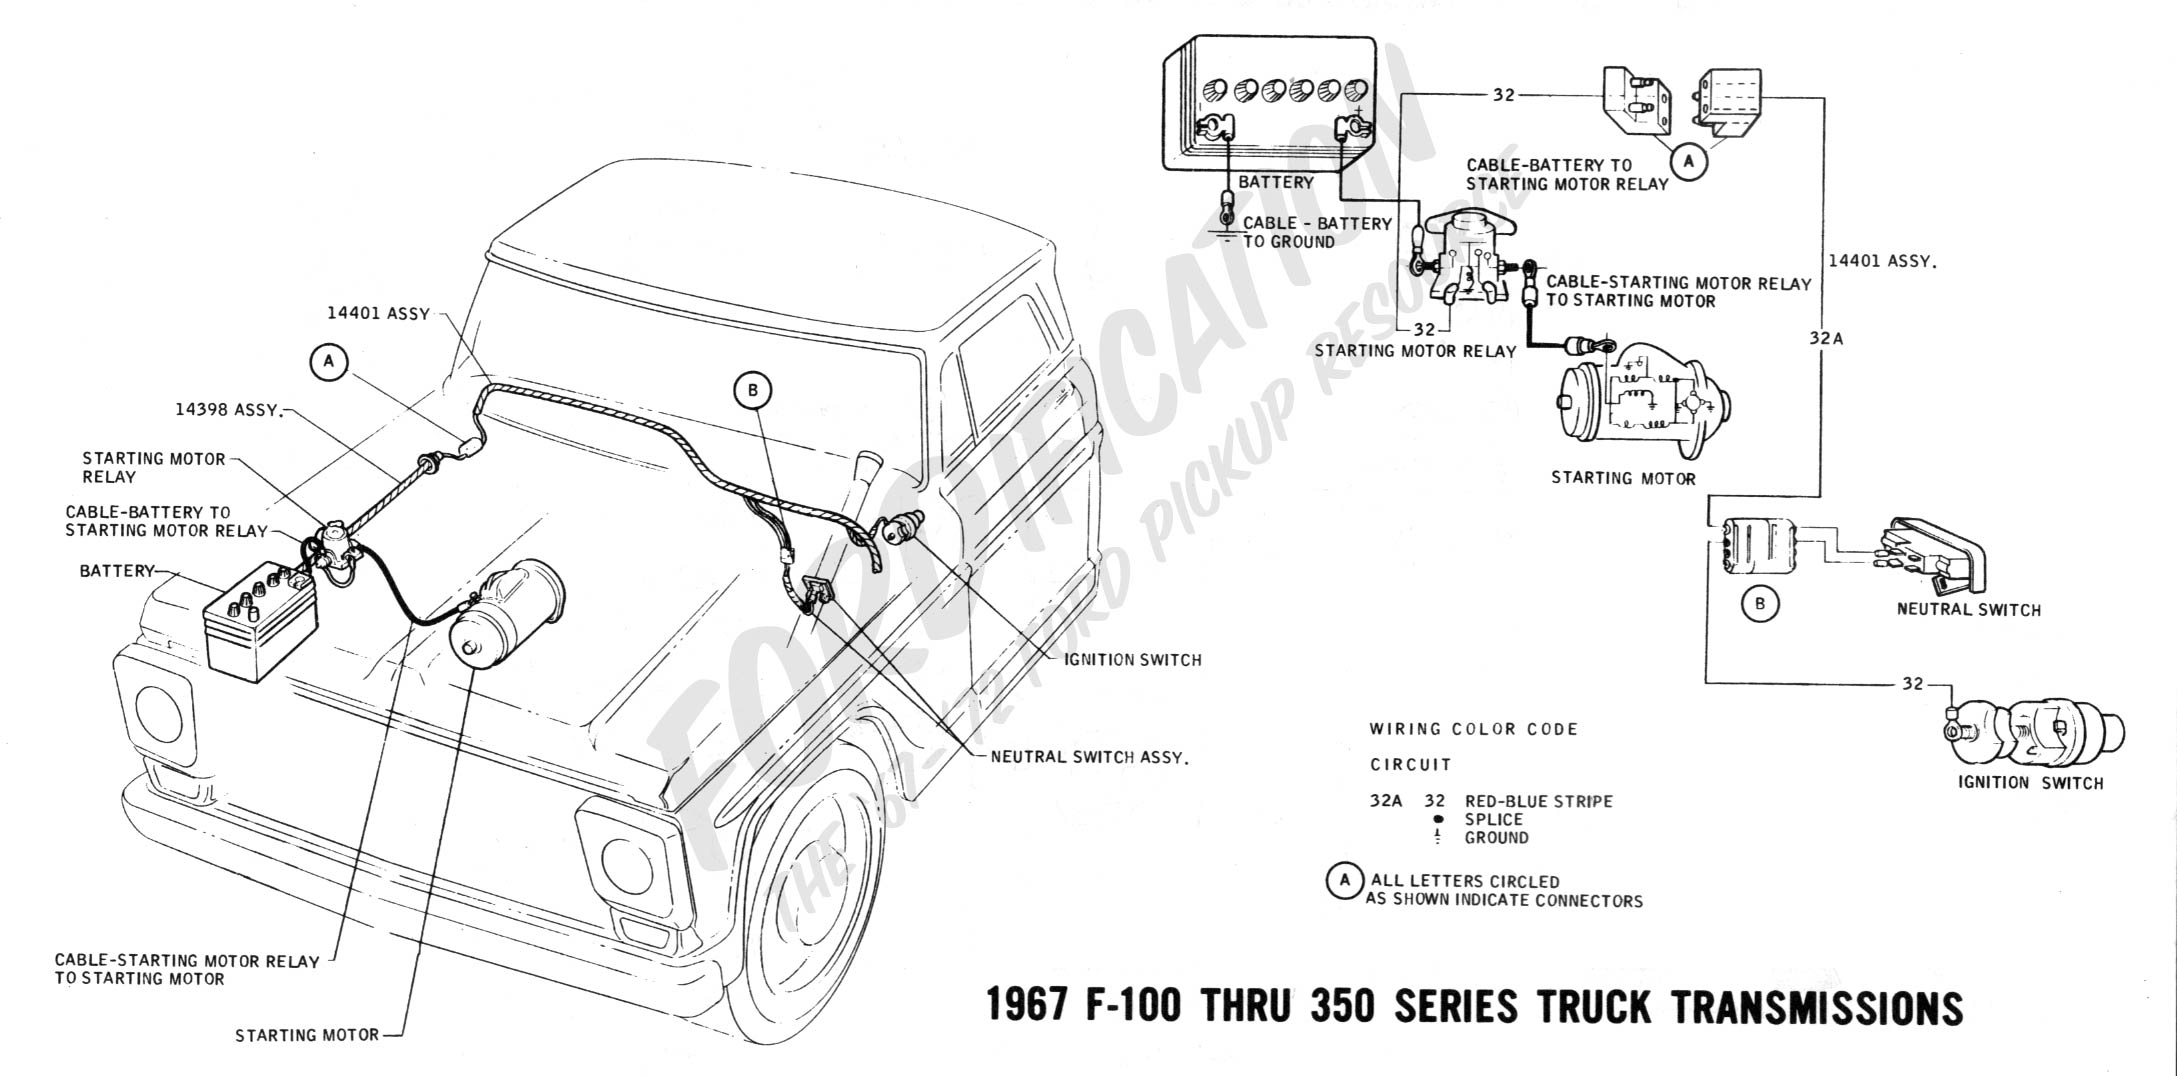 Ford F700 Series Trucks Wiring Digrams Diagram F500 Relay Ranger Fuel Pump Circuit Electrical Problemsolenoid Diagrams And